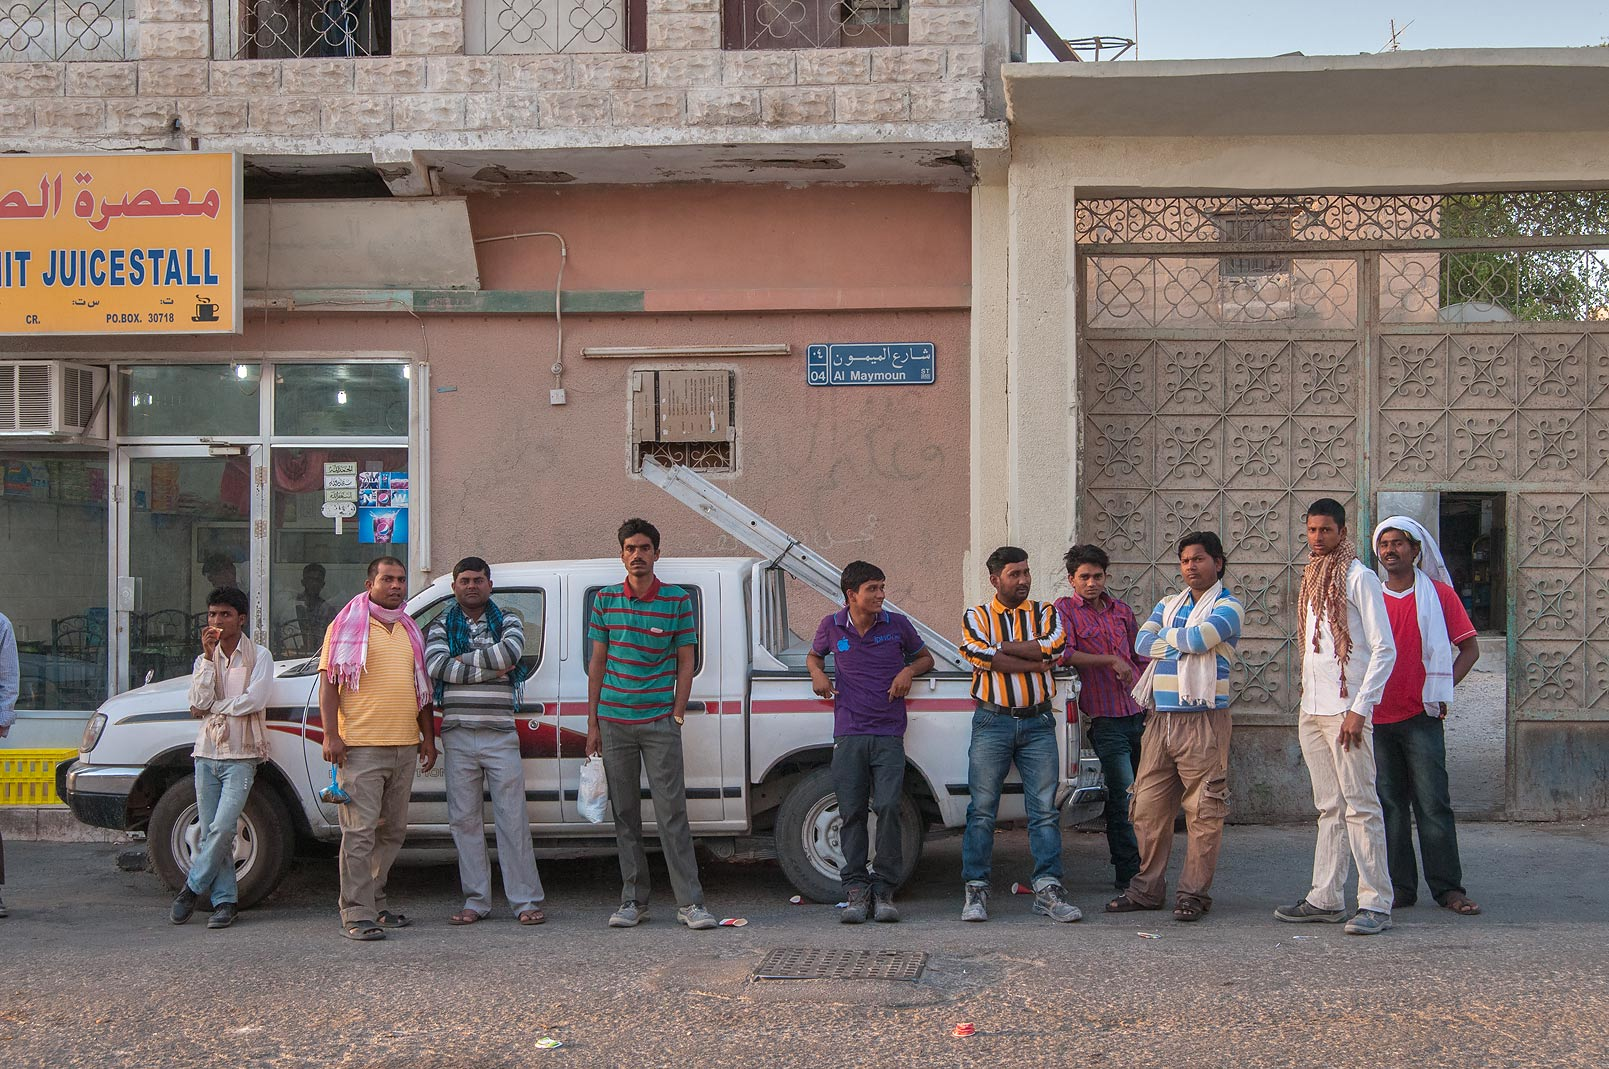 People gathering near Al Samit Jucestall on Al Maymoun St., Musheirib area. Doha, Qatar